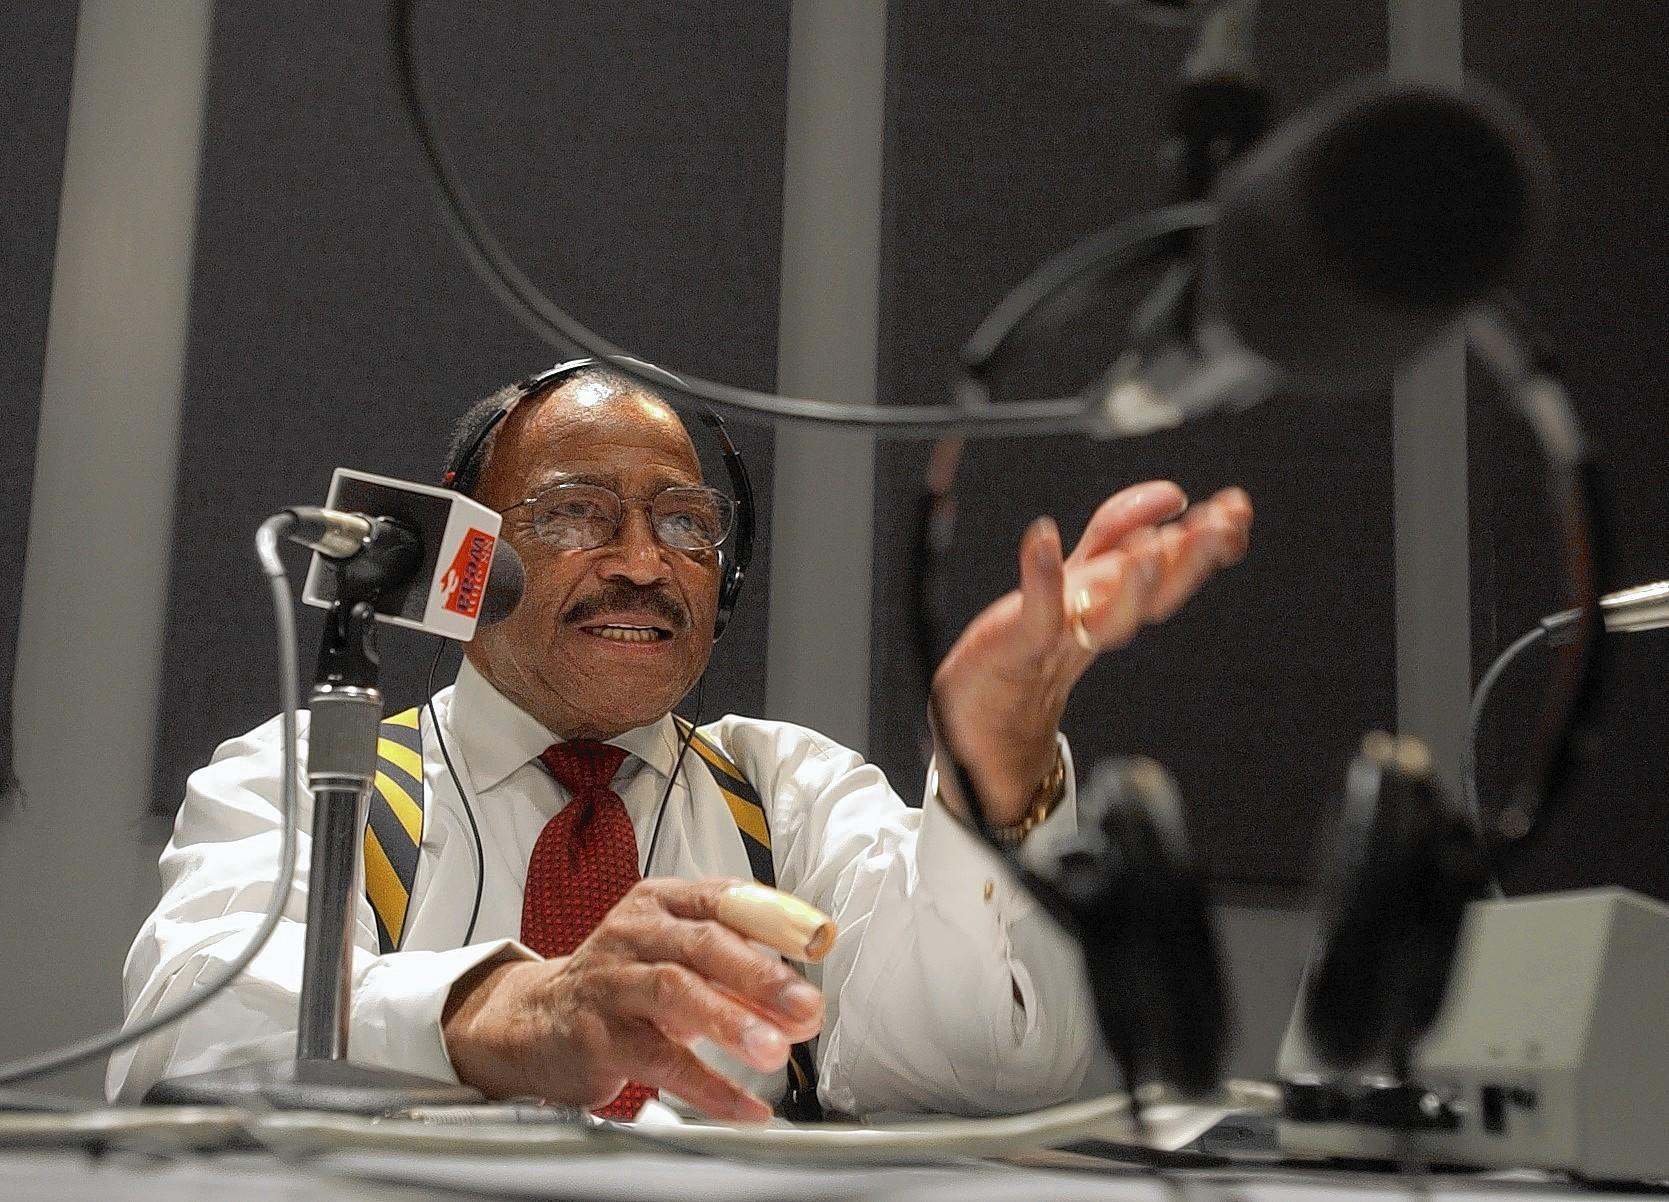 George W. Collins, a former Afro editor and reporter, hosted a local radio show at WEAA-FM in 2003.